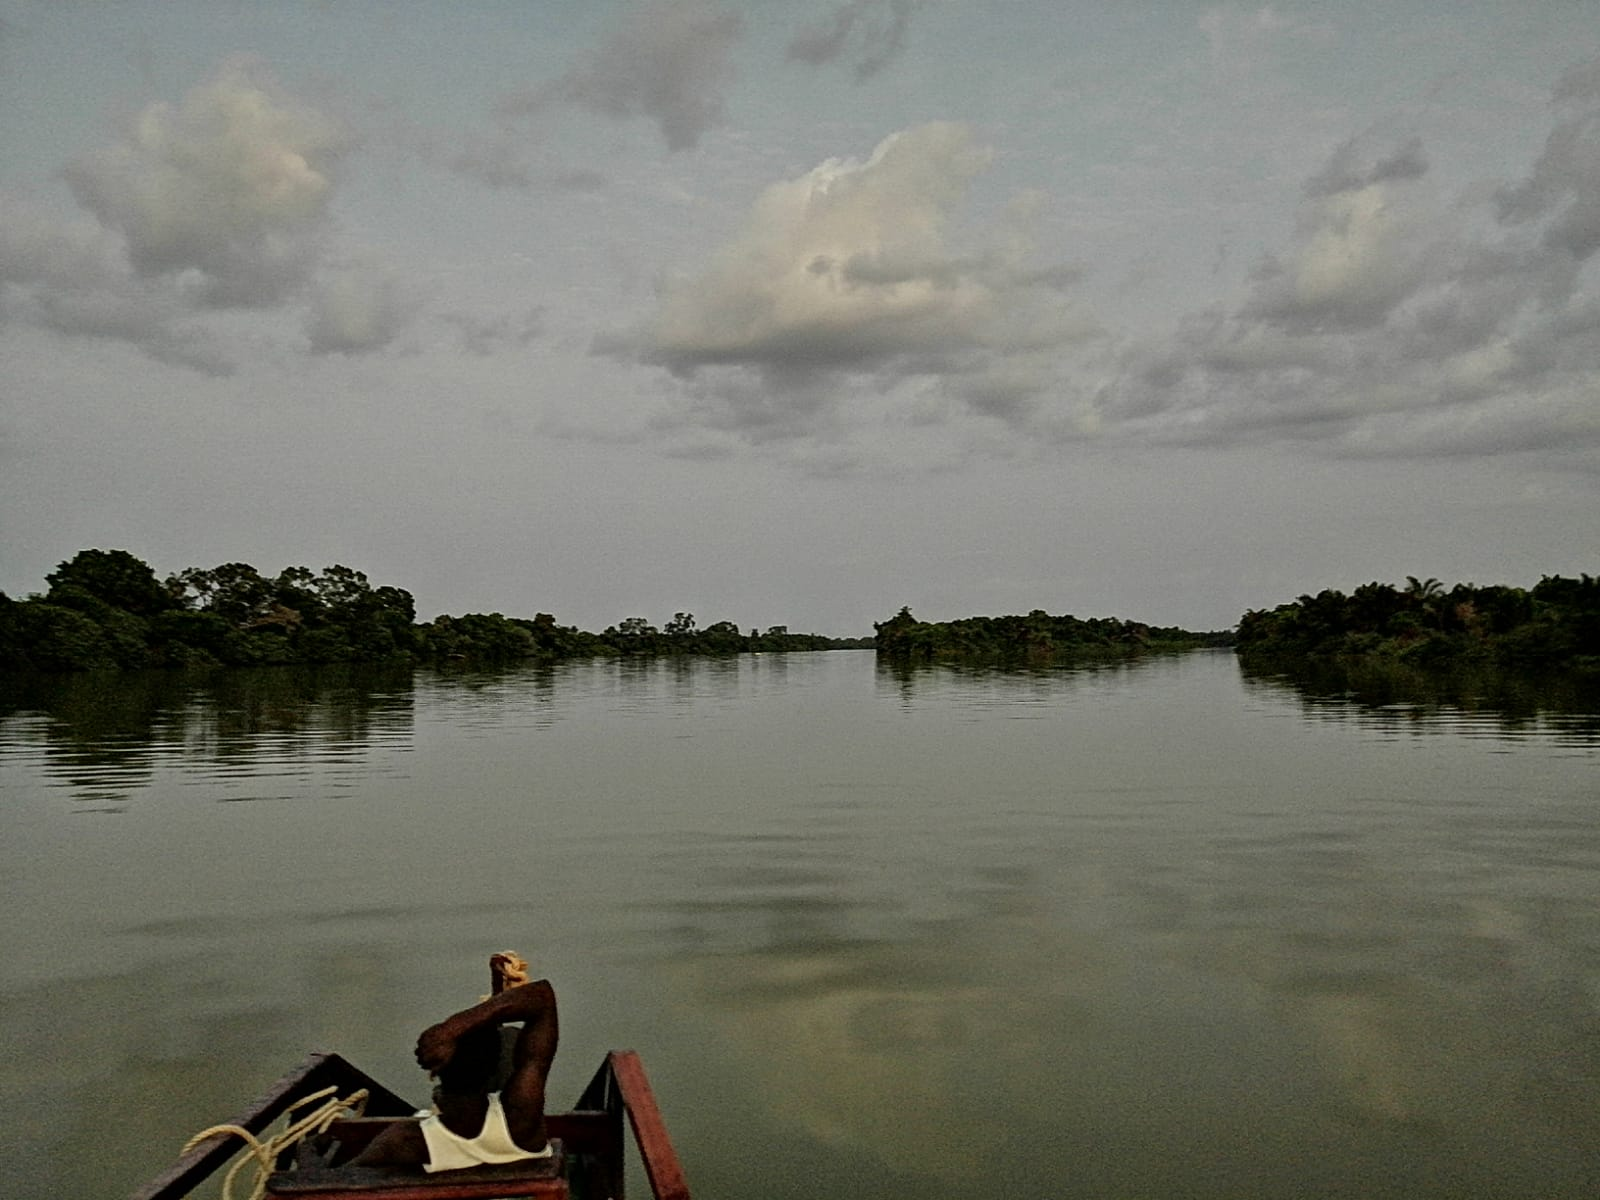 GambiaRiver 1 - THE GAMBIA 2021/22: WHY IS AFRICA'S SMALLEST COUNTRY IDEAL AS AN ADVISABLE WINTER DESTINATION?